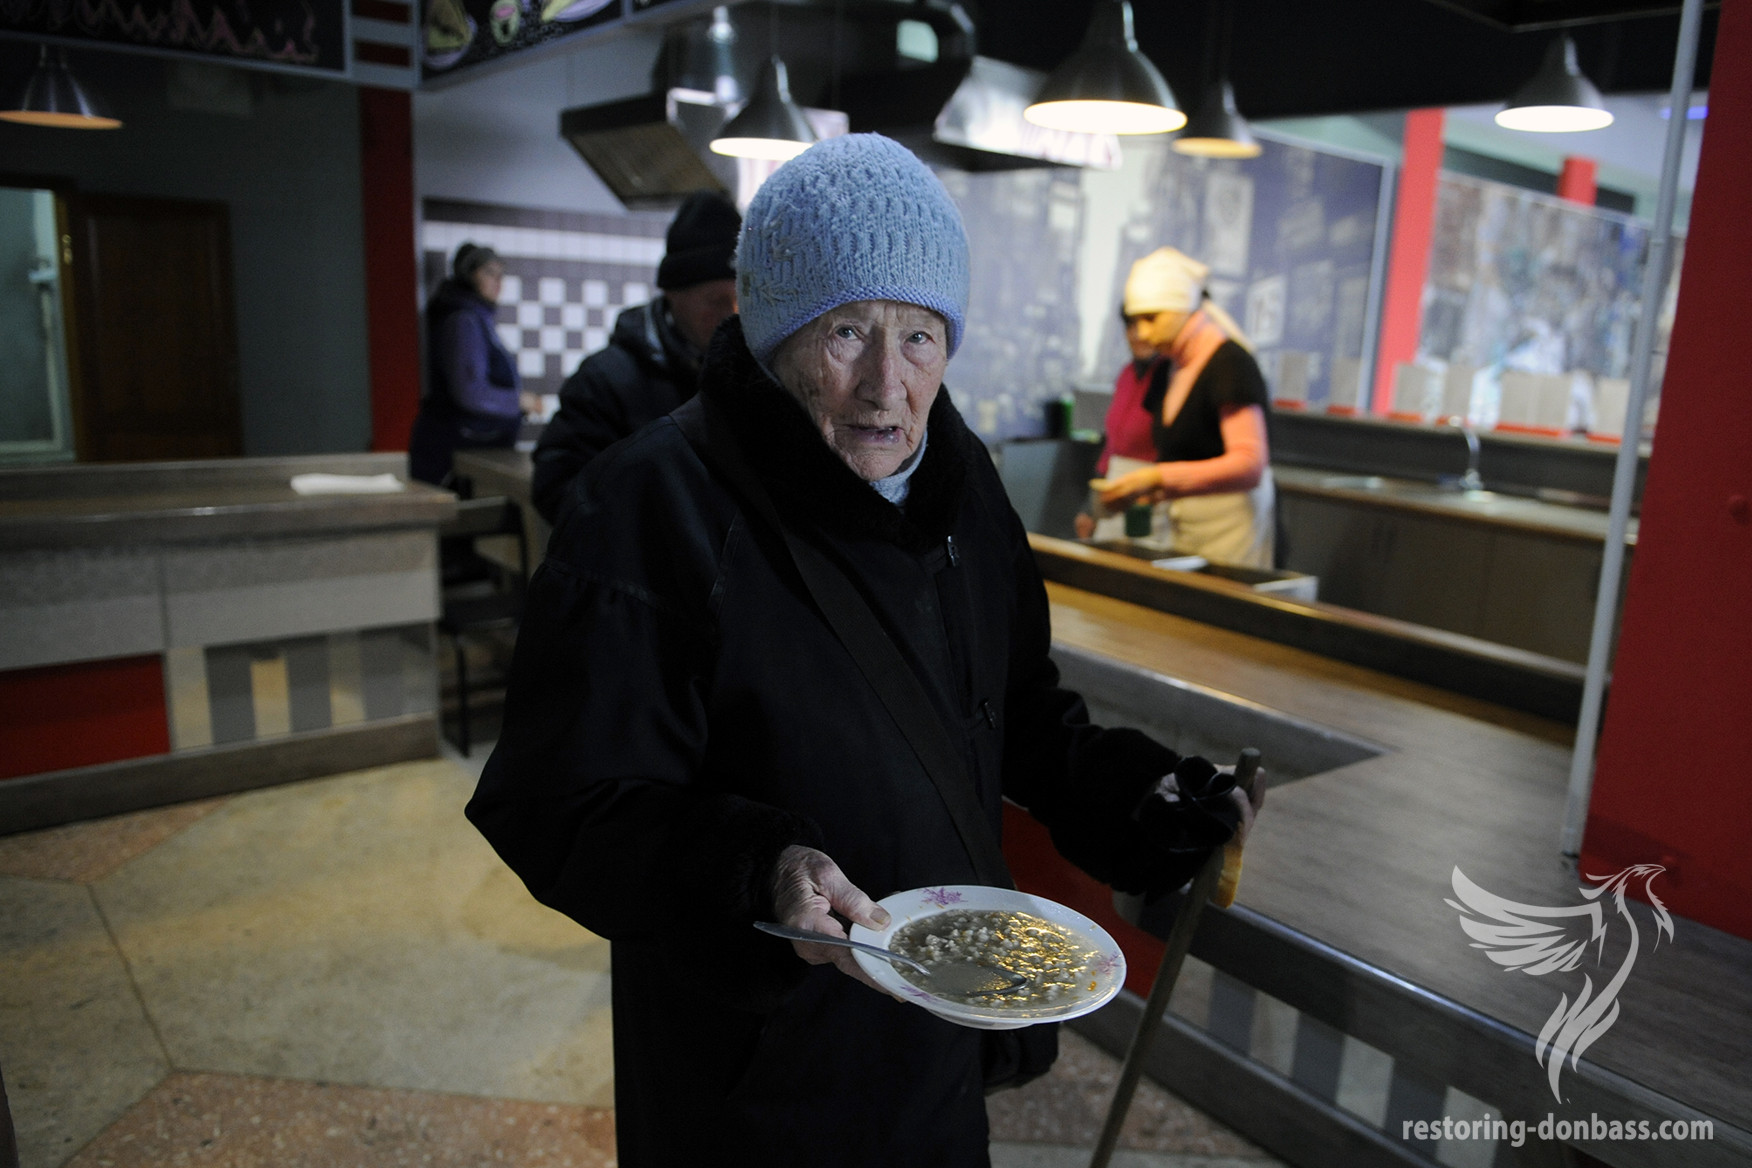 Elderly Donetsk resident in social dining, February 8, 2015